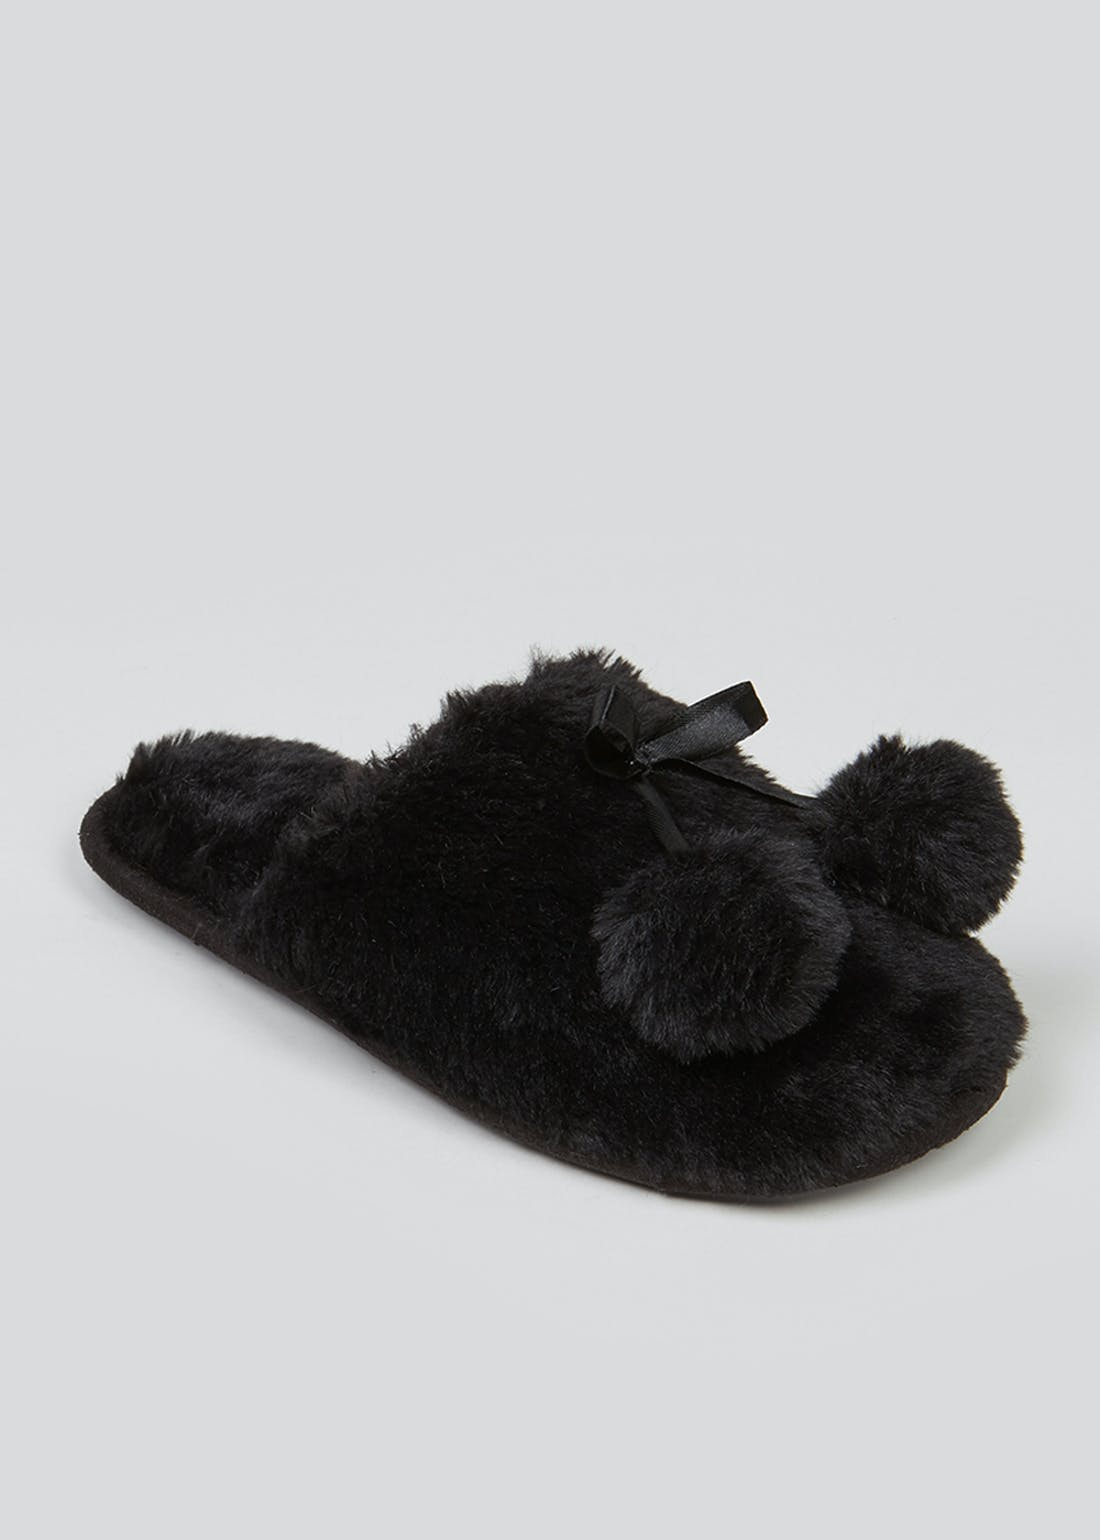 Black Fluffy Pom Pom Slippers